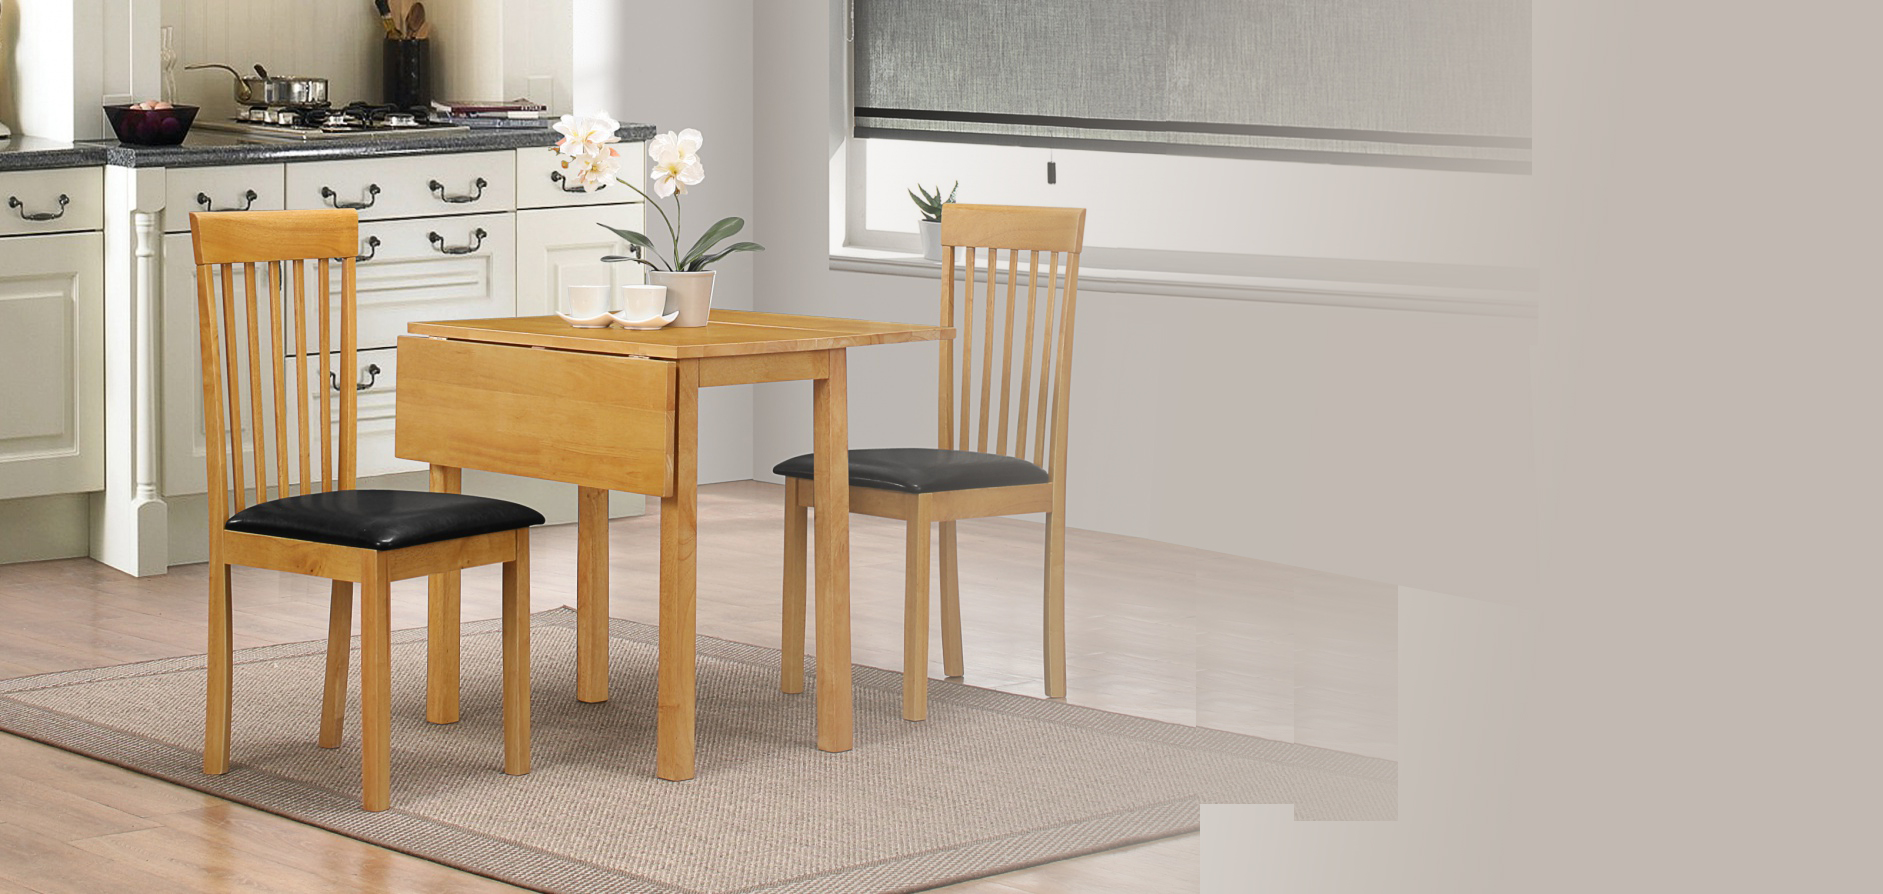 Atlas Dining Room Set only £178.20